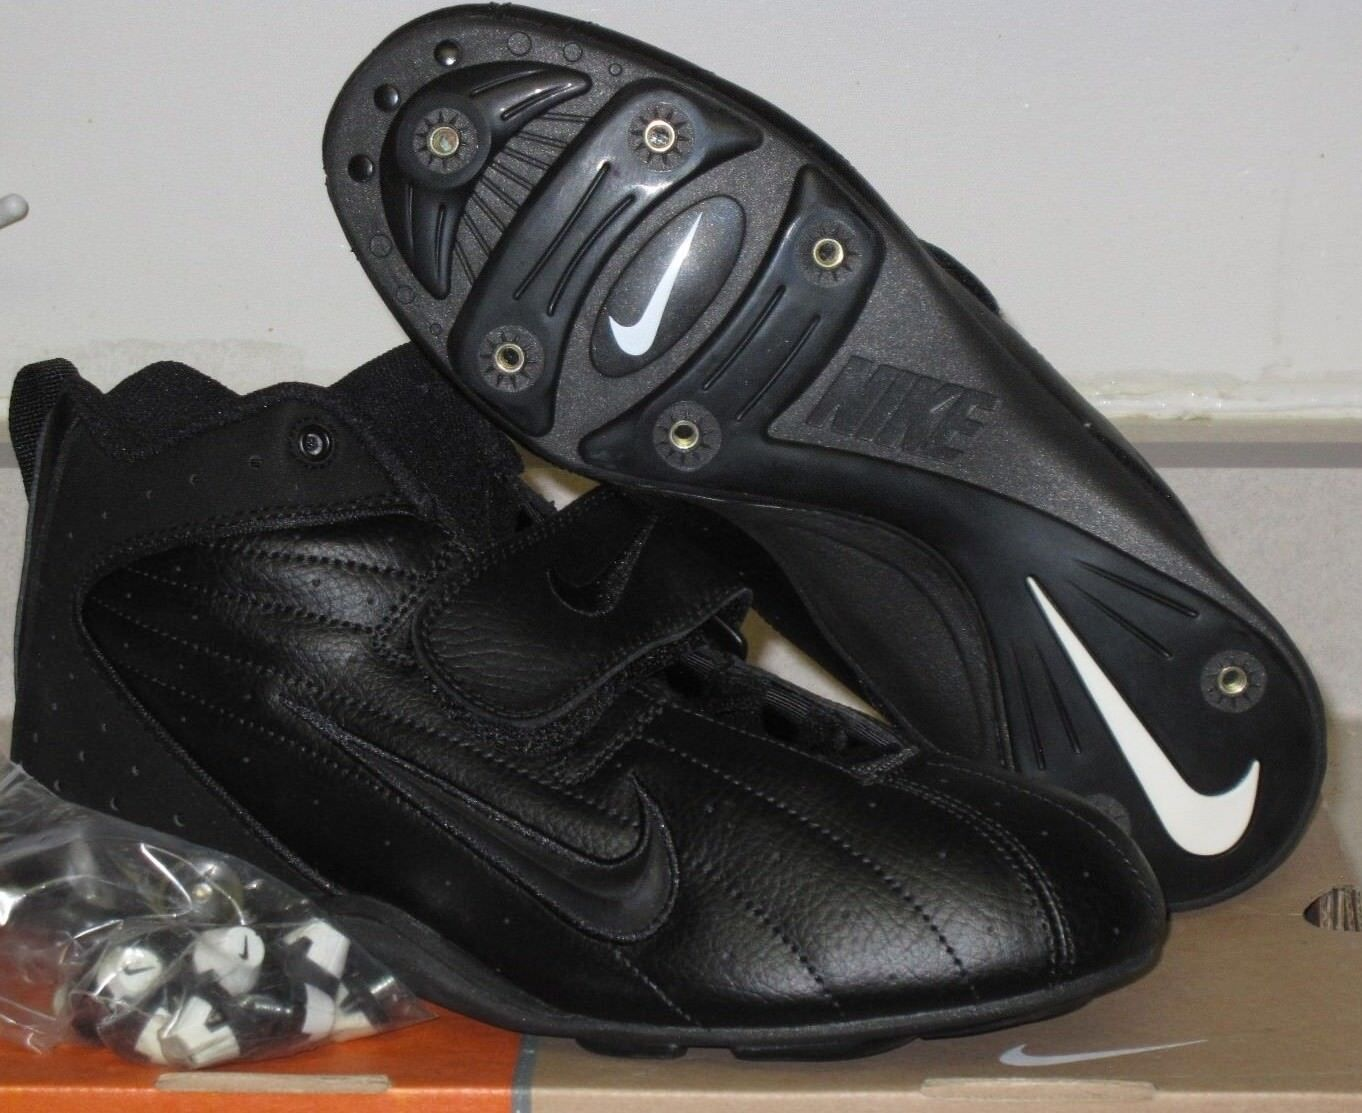 NIKE OPEN FIELD MEN'S FOOTBALL CLEATS SIZE 8 The latest discount shoes for men and women